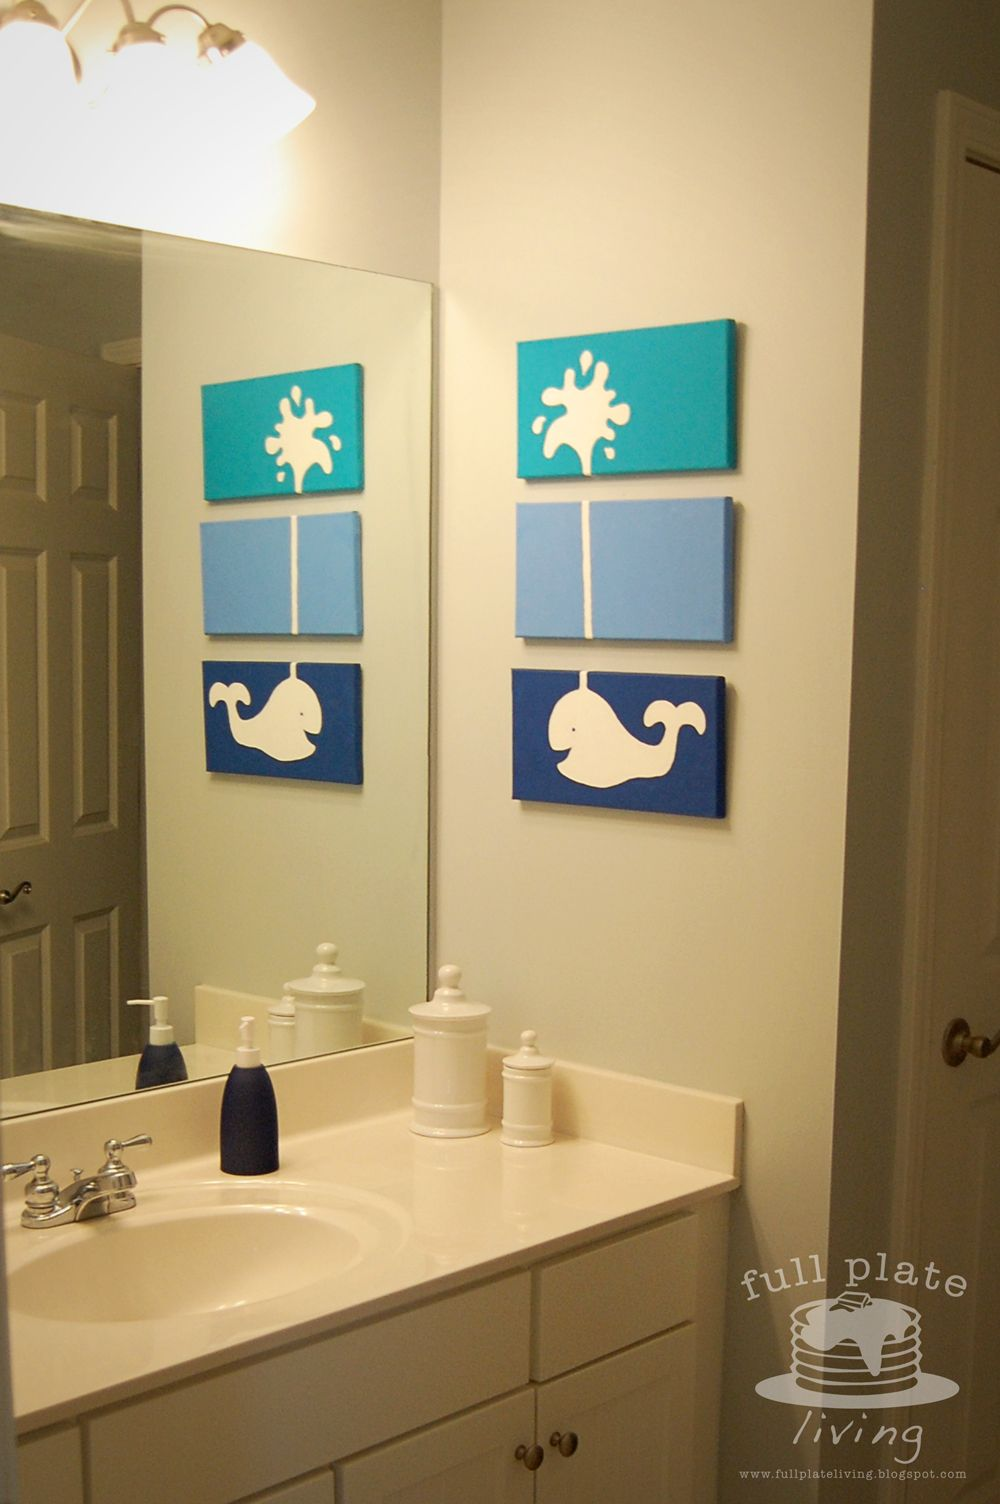 Full Plate Living: Whale of a Project Love this idea! She used paint ...